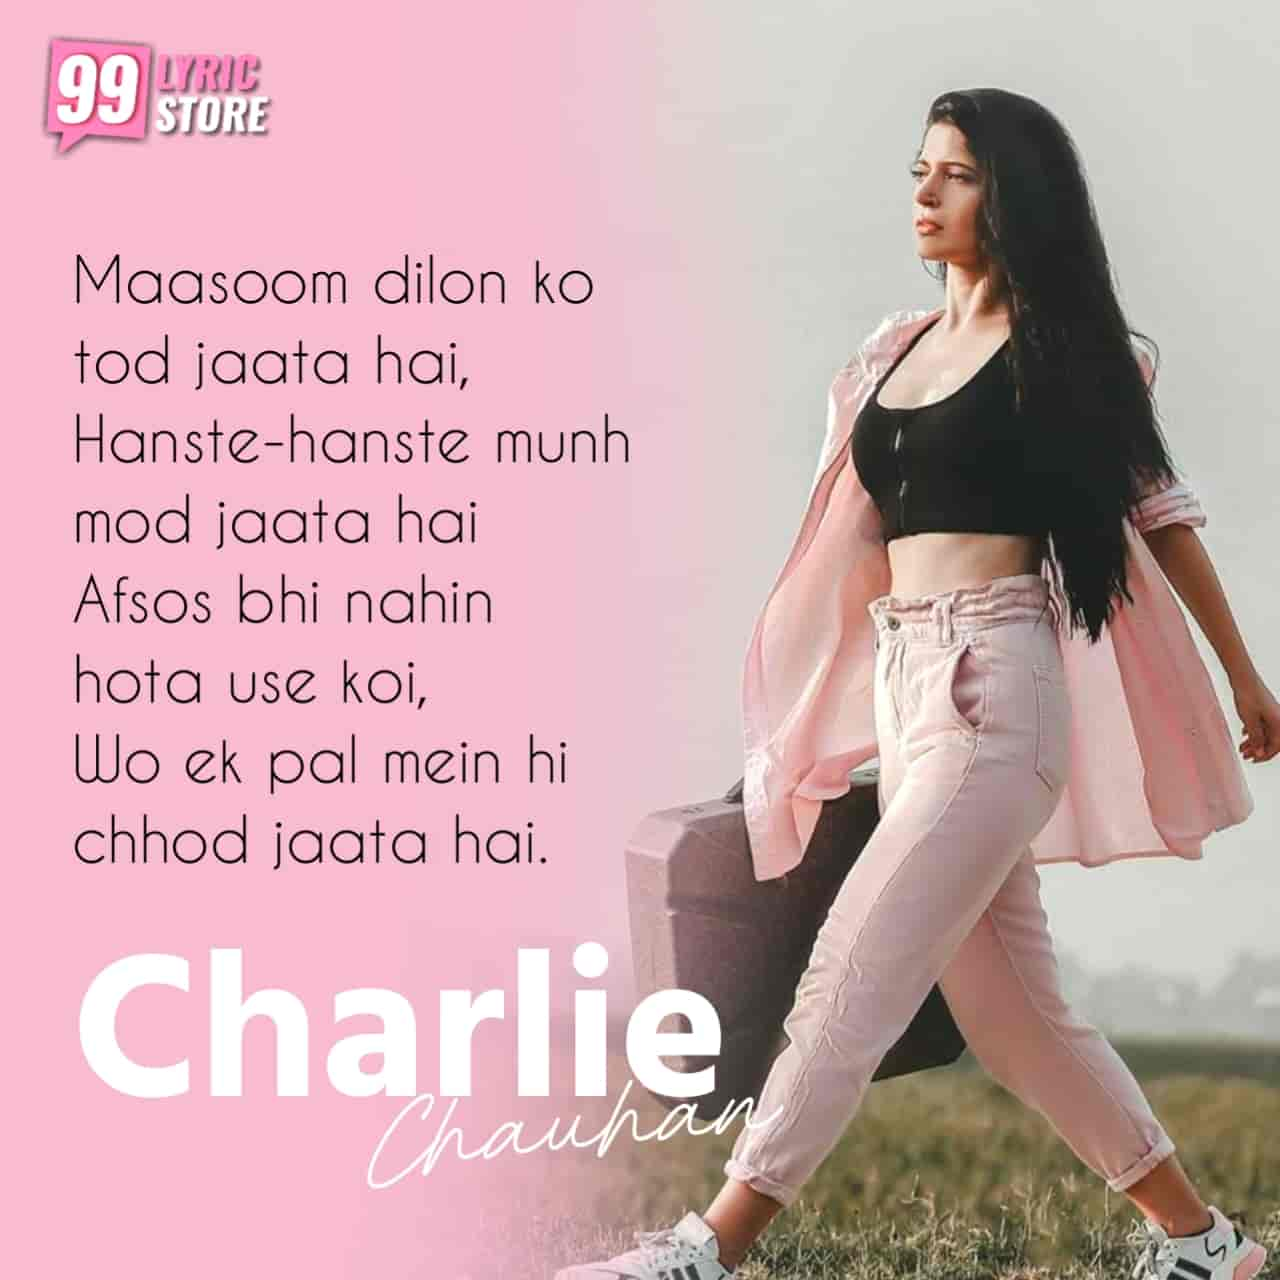 This new poem by Indian actress and young poet Charlie Chauhan, titled 'Tujhey Koi Tujh Jaisa Na Mil Jaye', wrote a poem which is very beautiful.